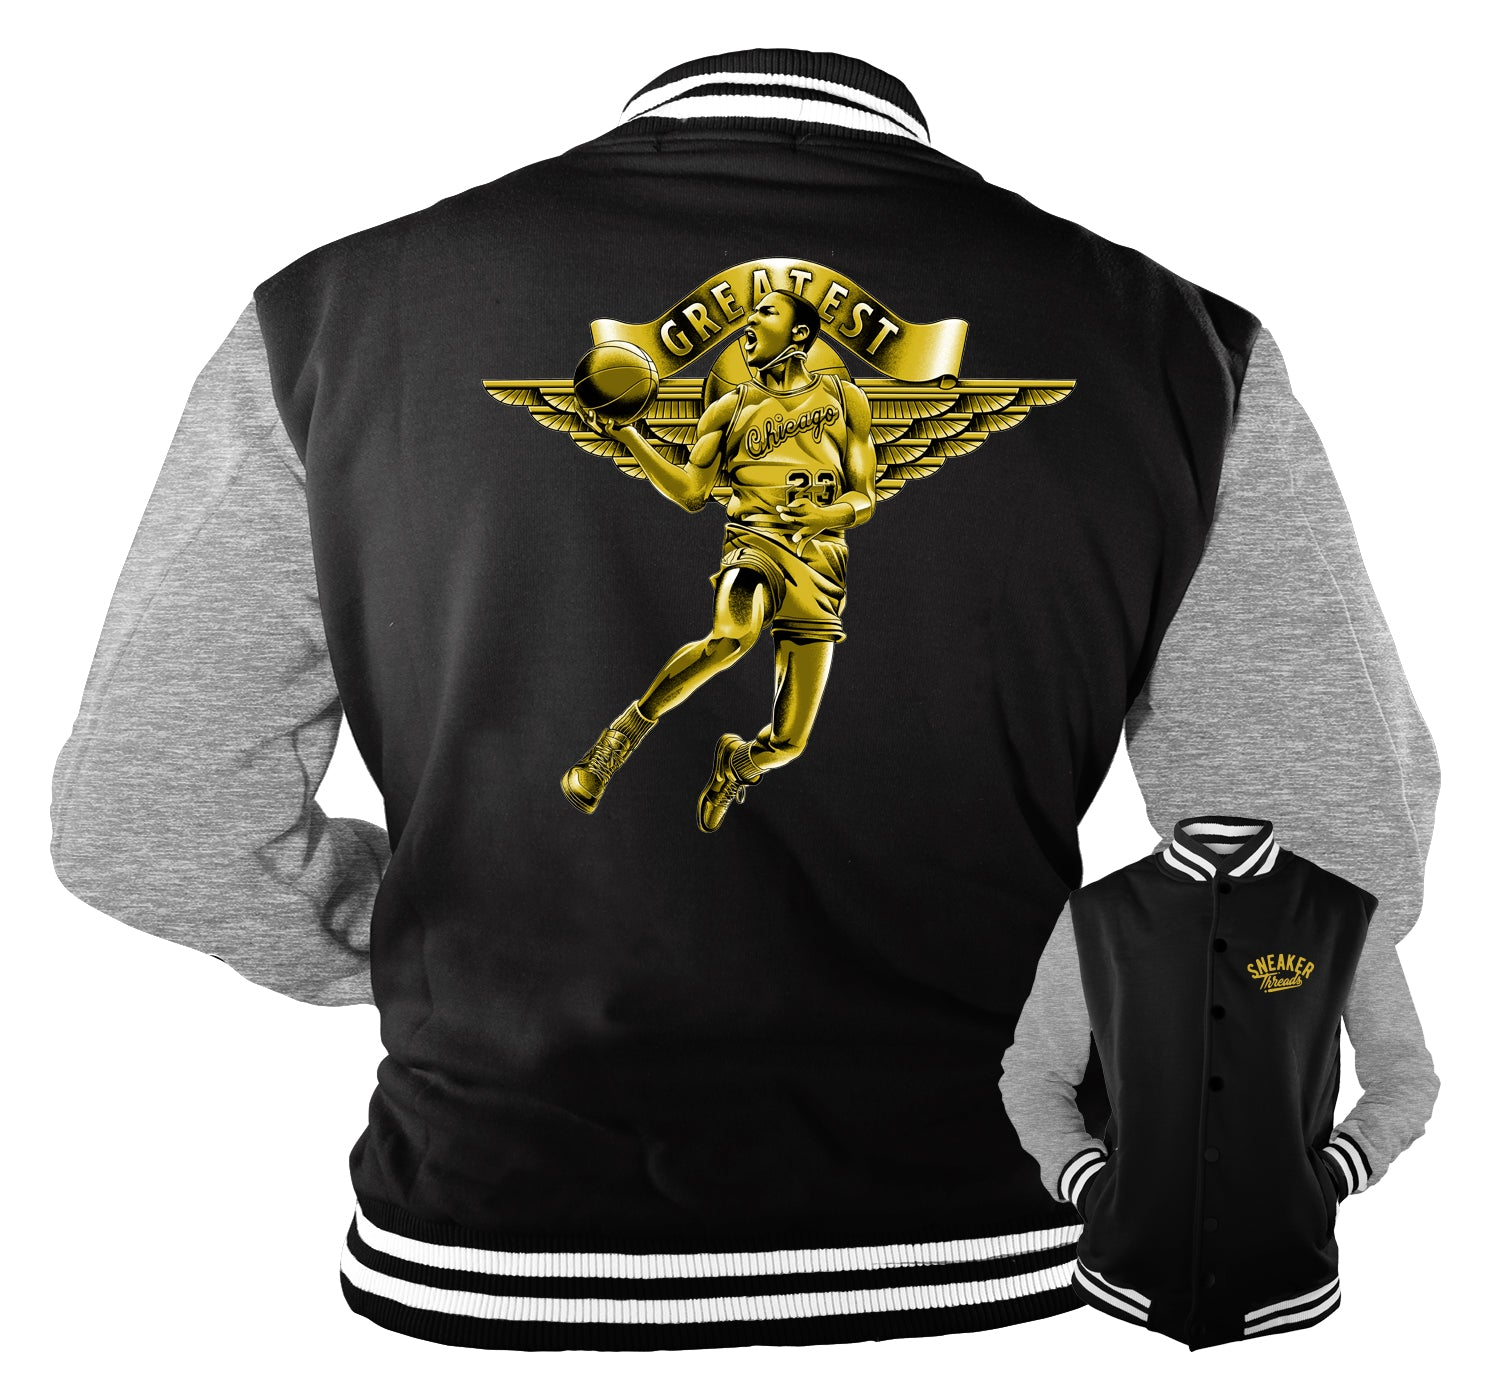 Jordan 1 Black Gold Jacket - Greatest - Black